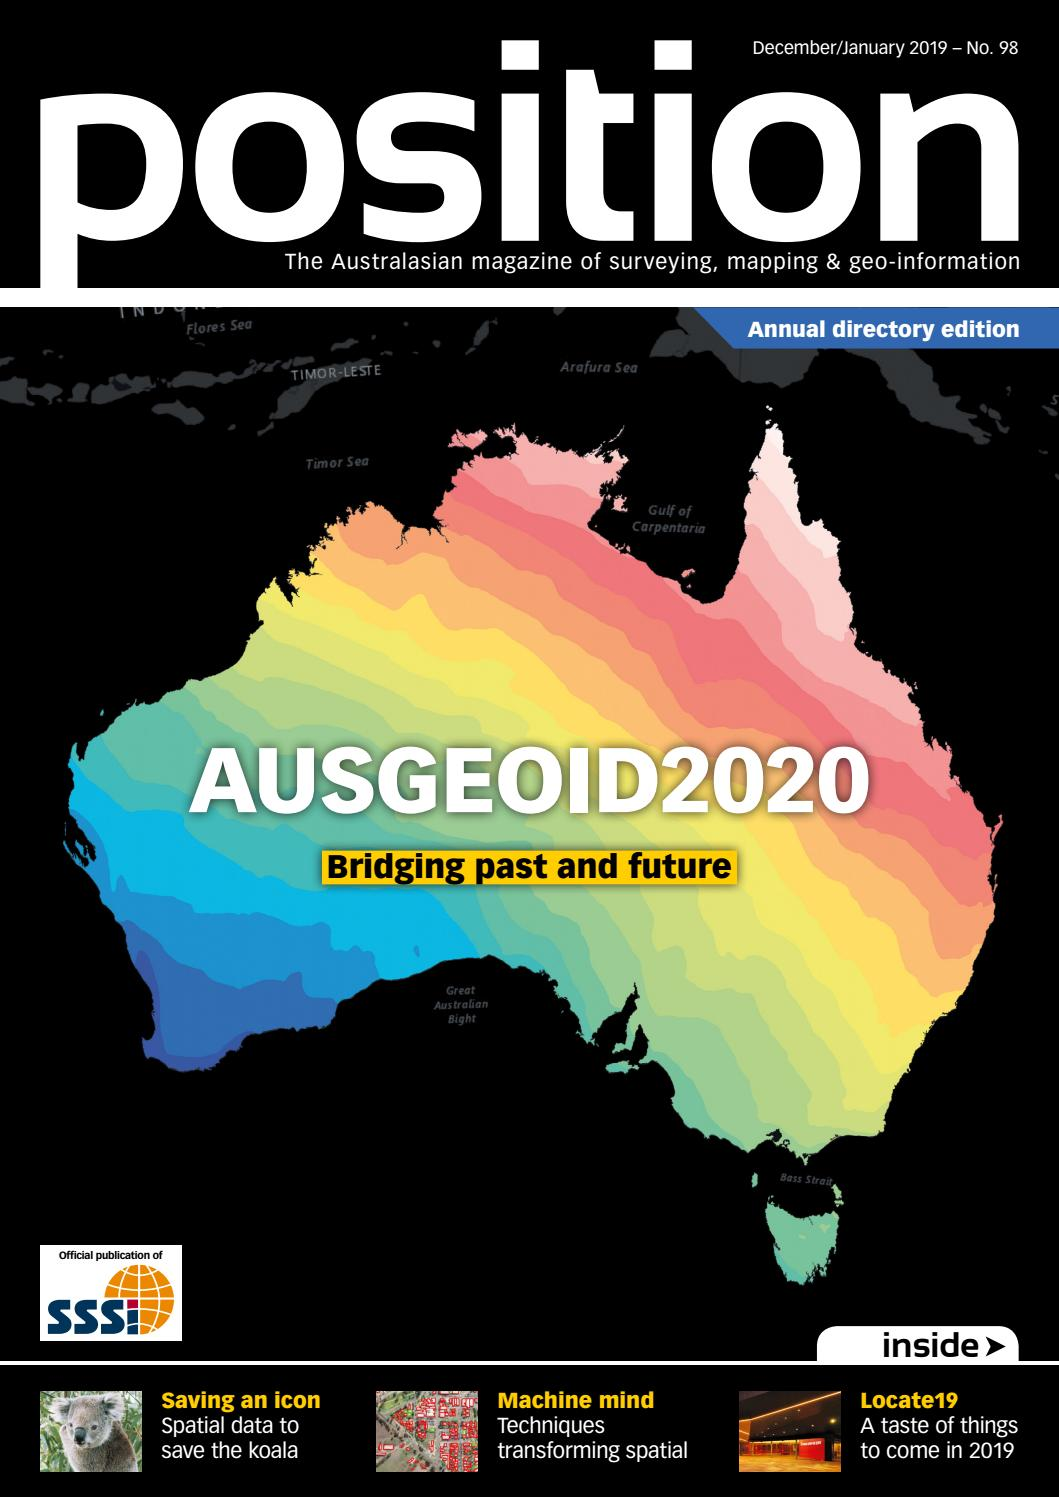 Position issue 98 Dec 2018-Jan 2019 by The Intermedia Group